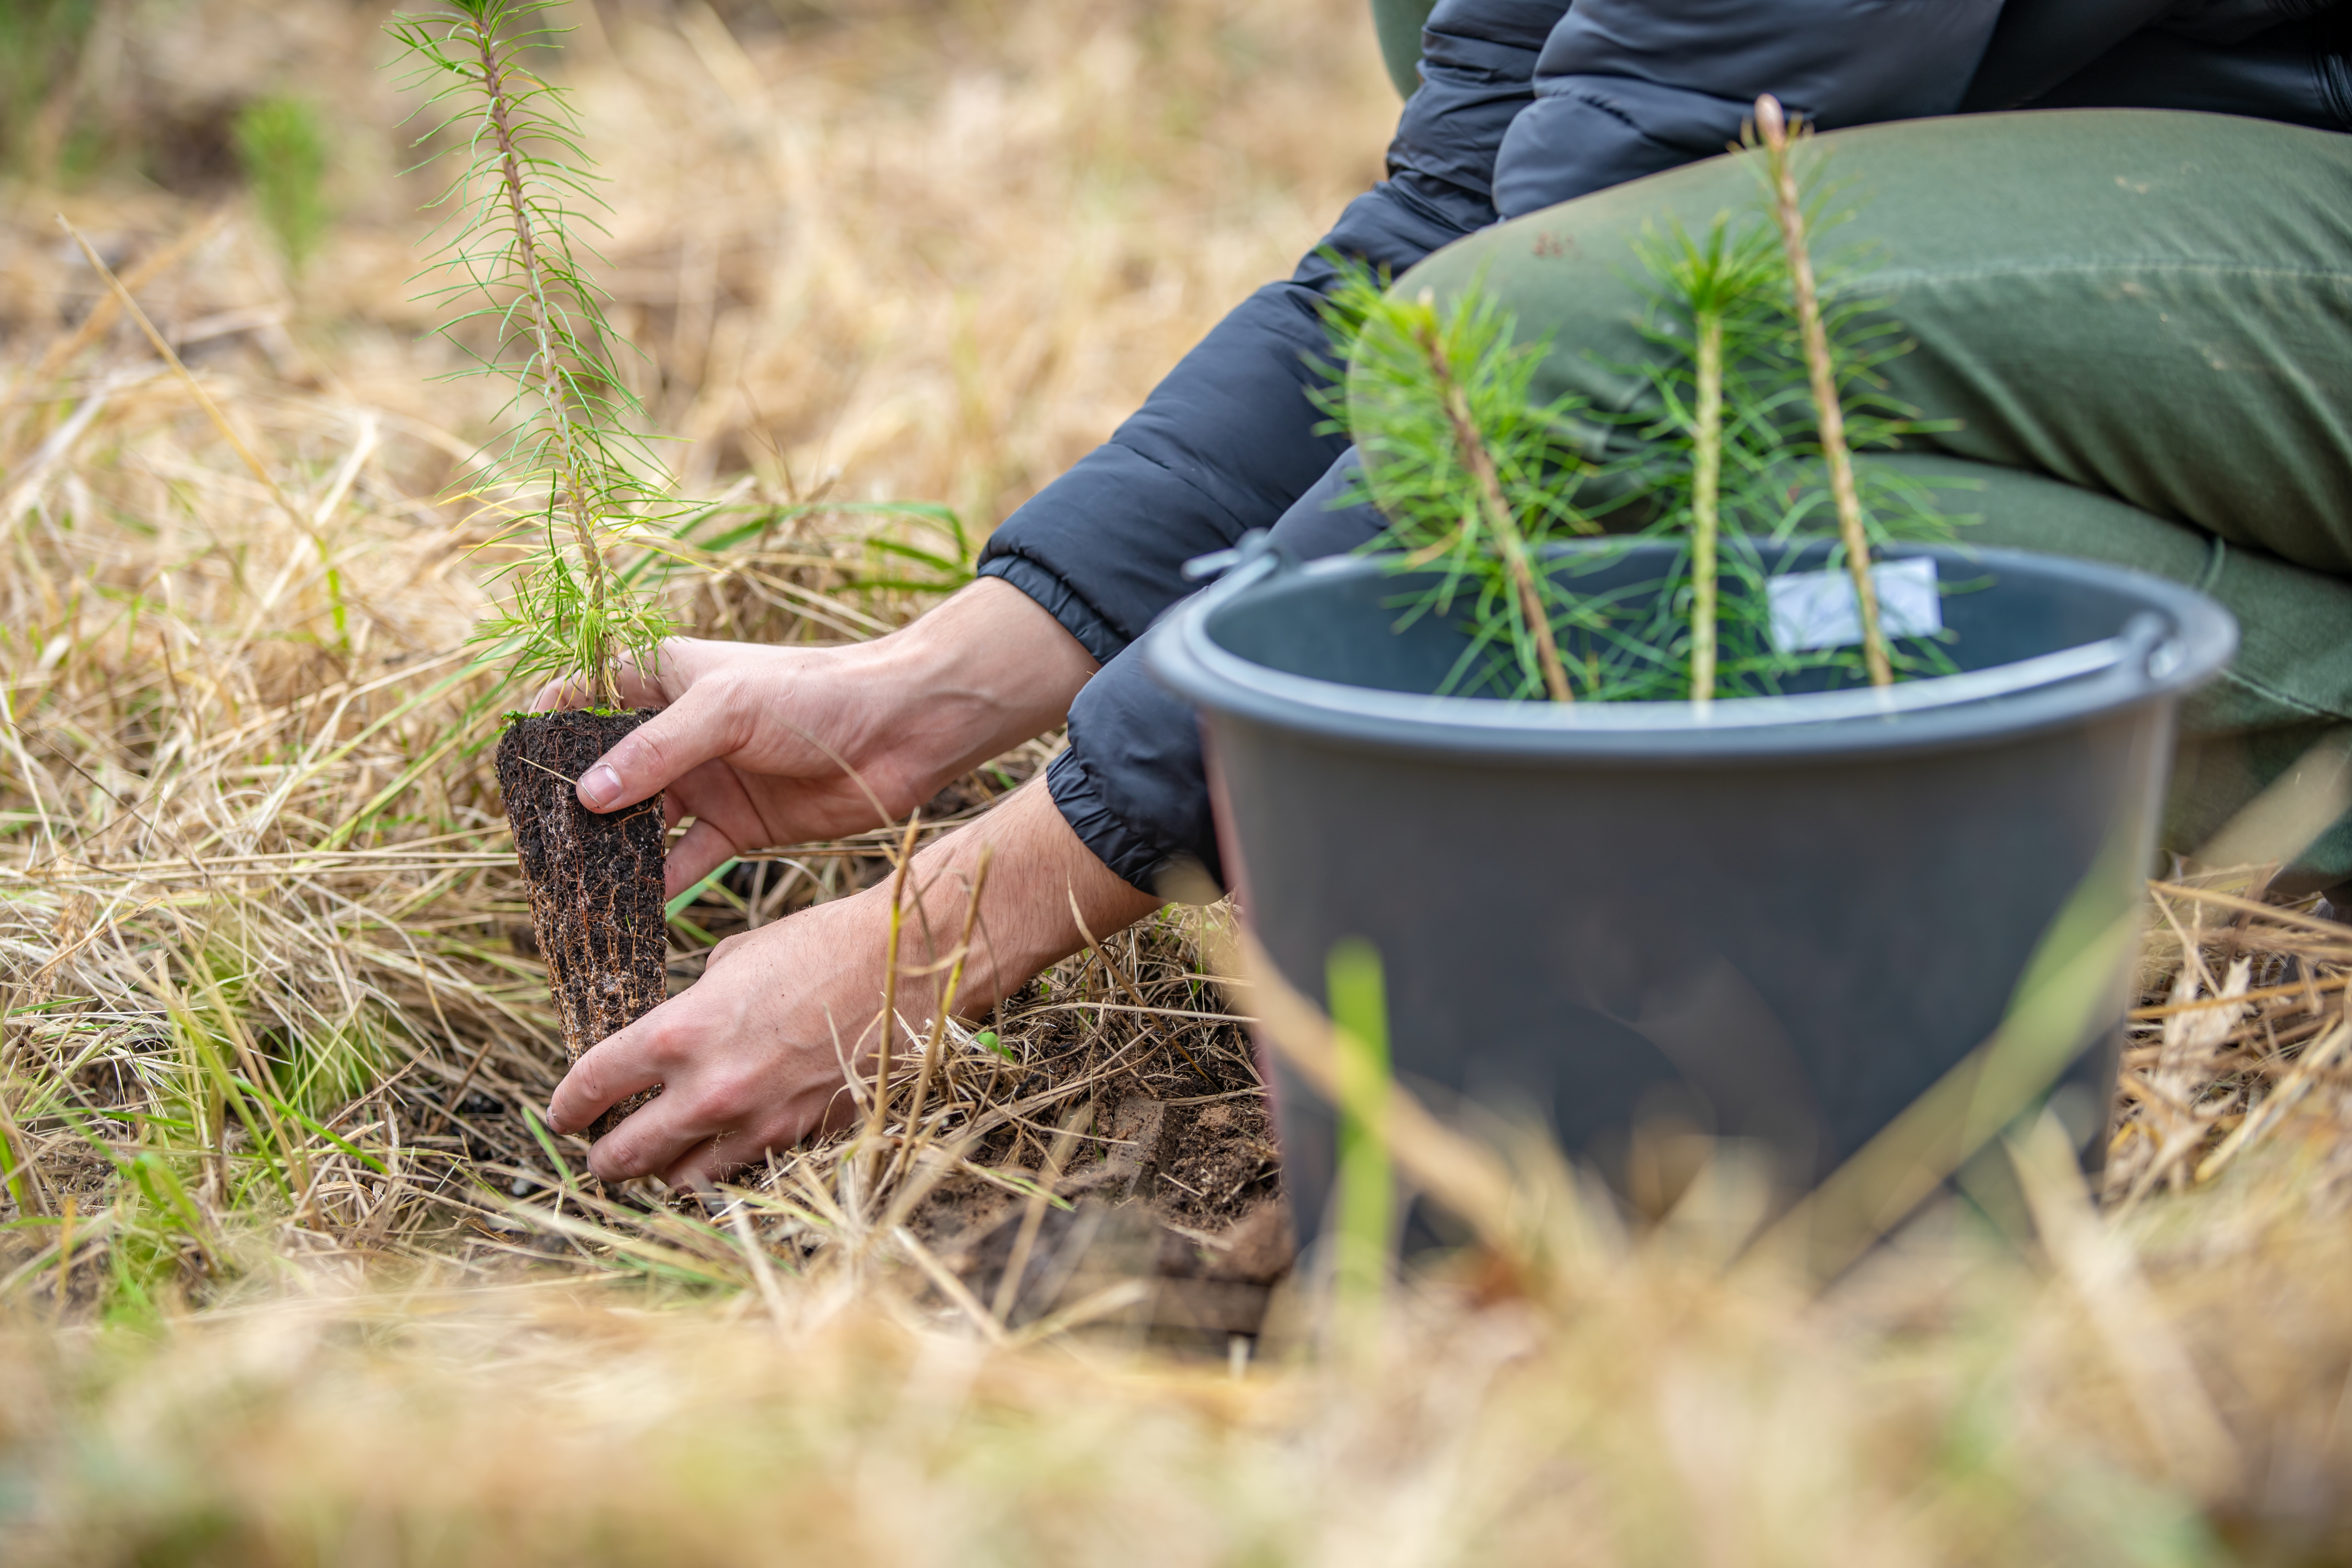 35916977-planting-young-trees-in-the-forest-after-devastating